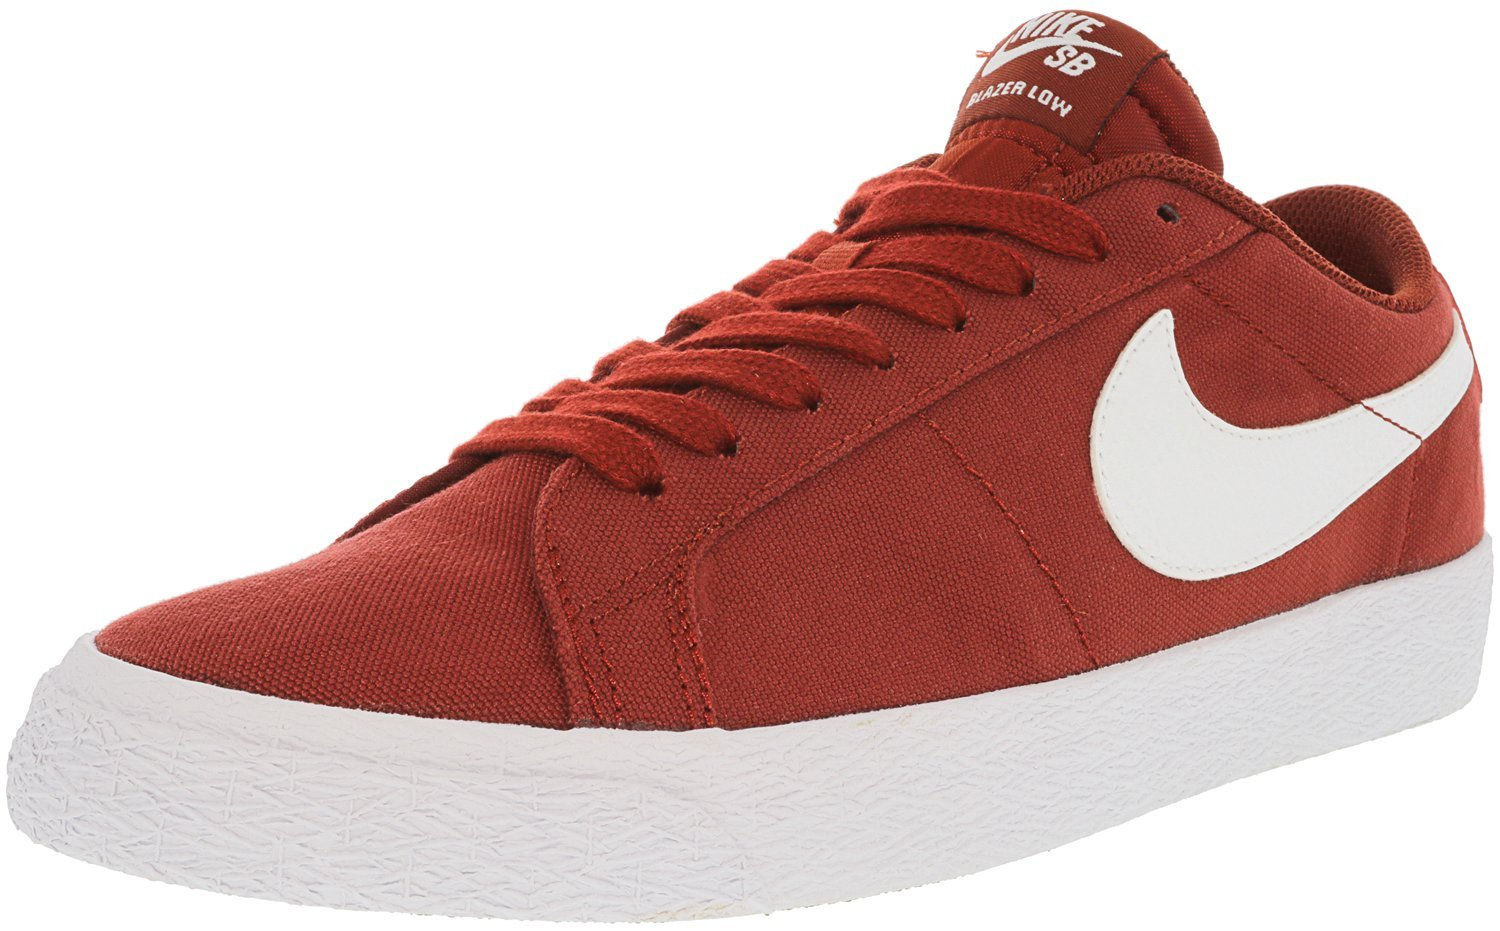 NIKE Men's Blazer Low GT Ankle-High Leather Flat Shoe B01MUIFGNT 9.5 D(M) US|Dark Cayenne / White